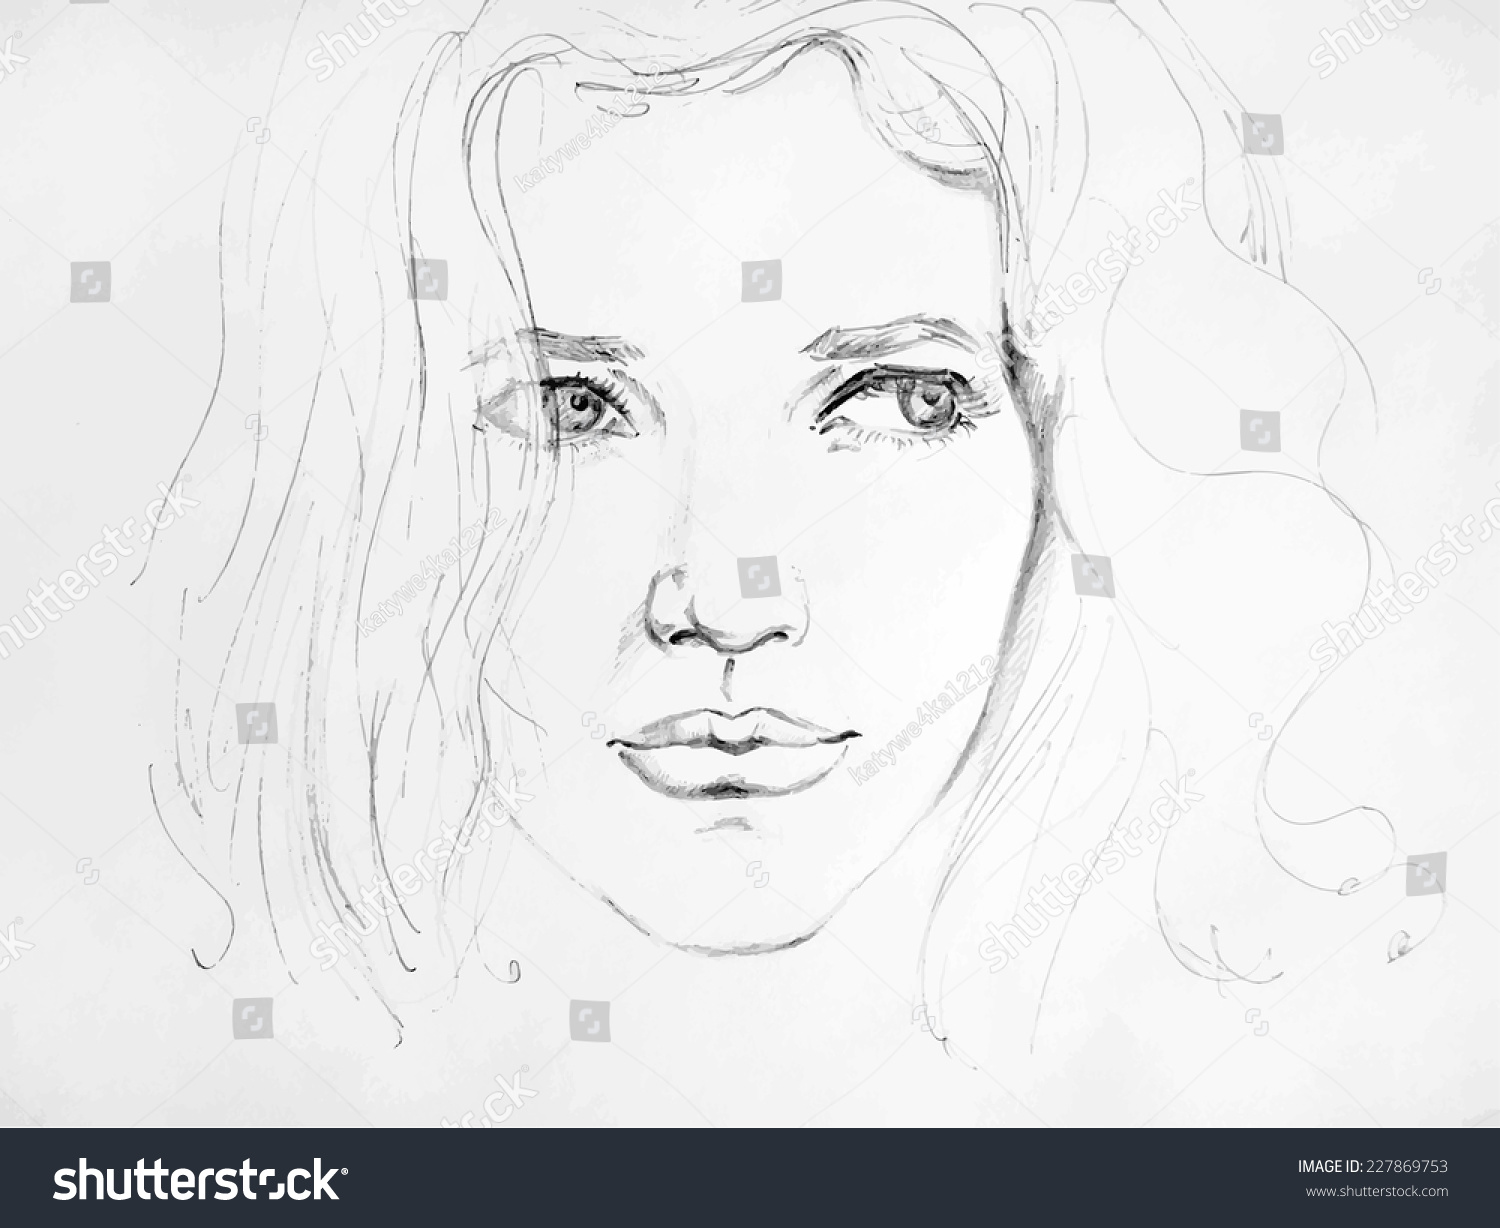 Hand drawn pencil sketch with face of a girl female portrait